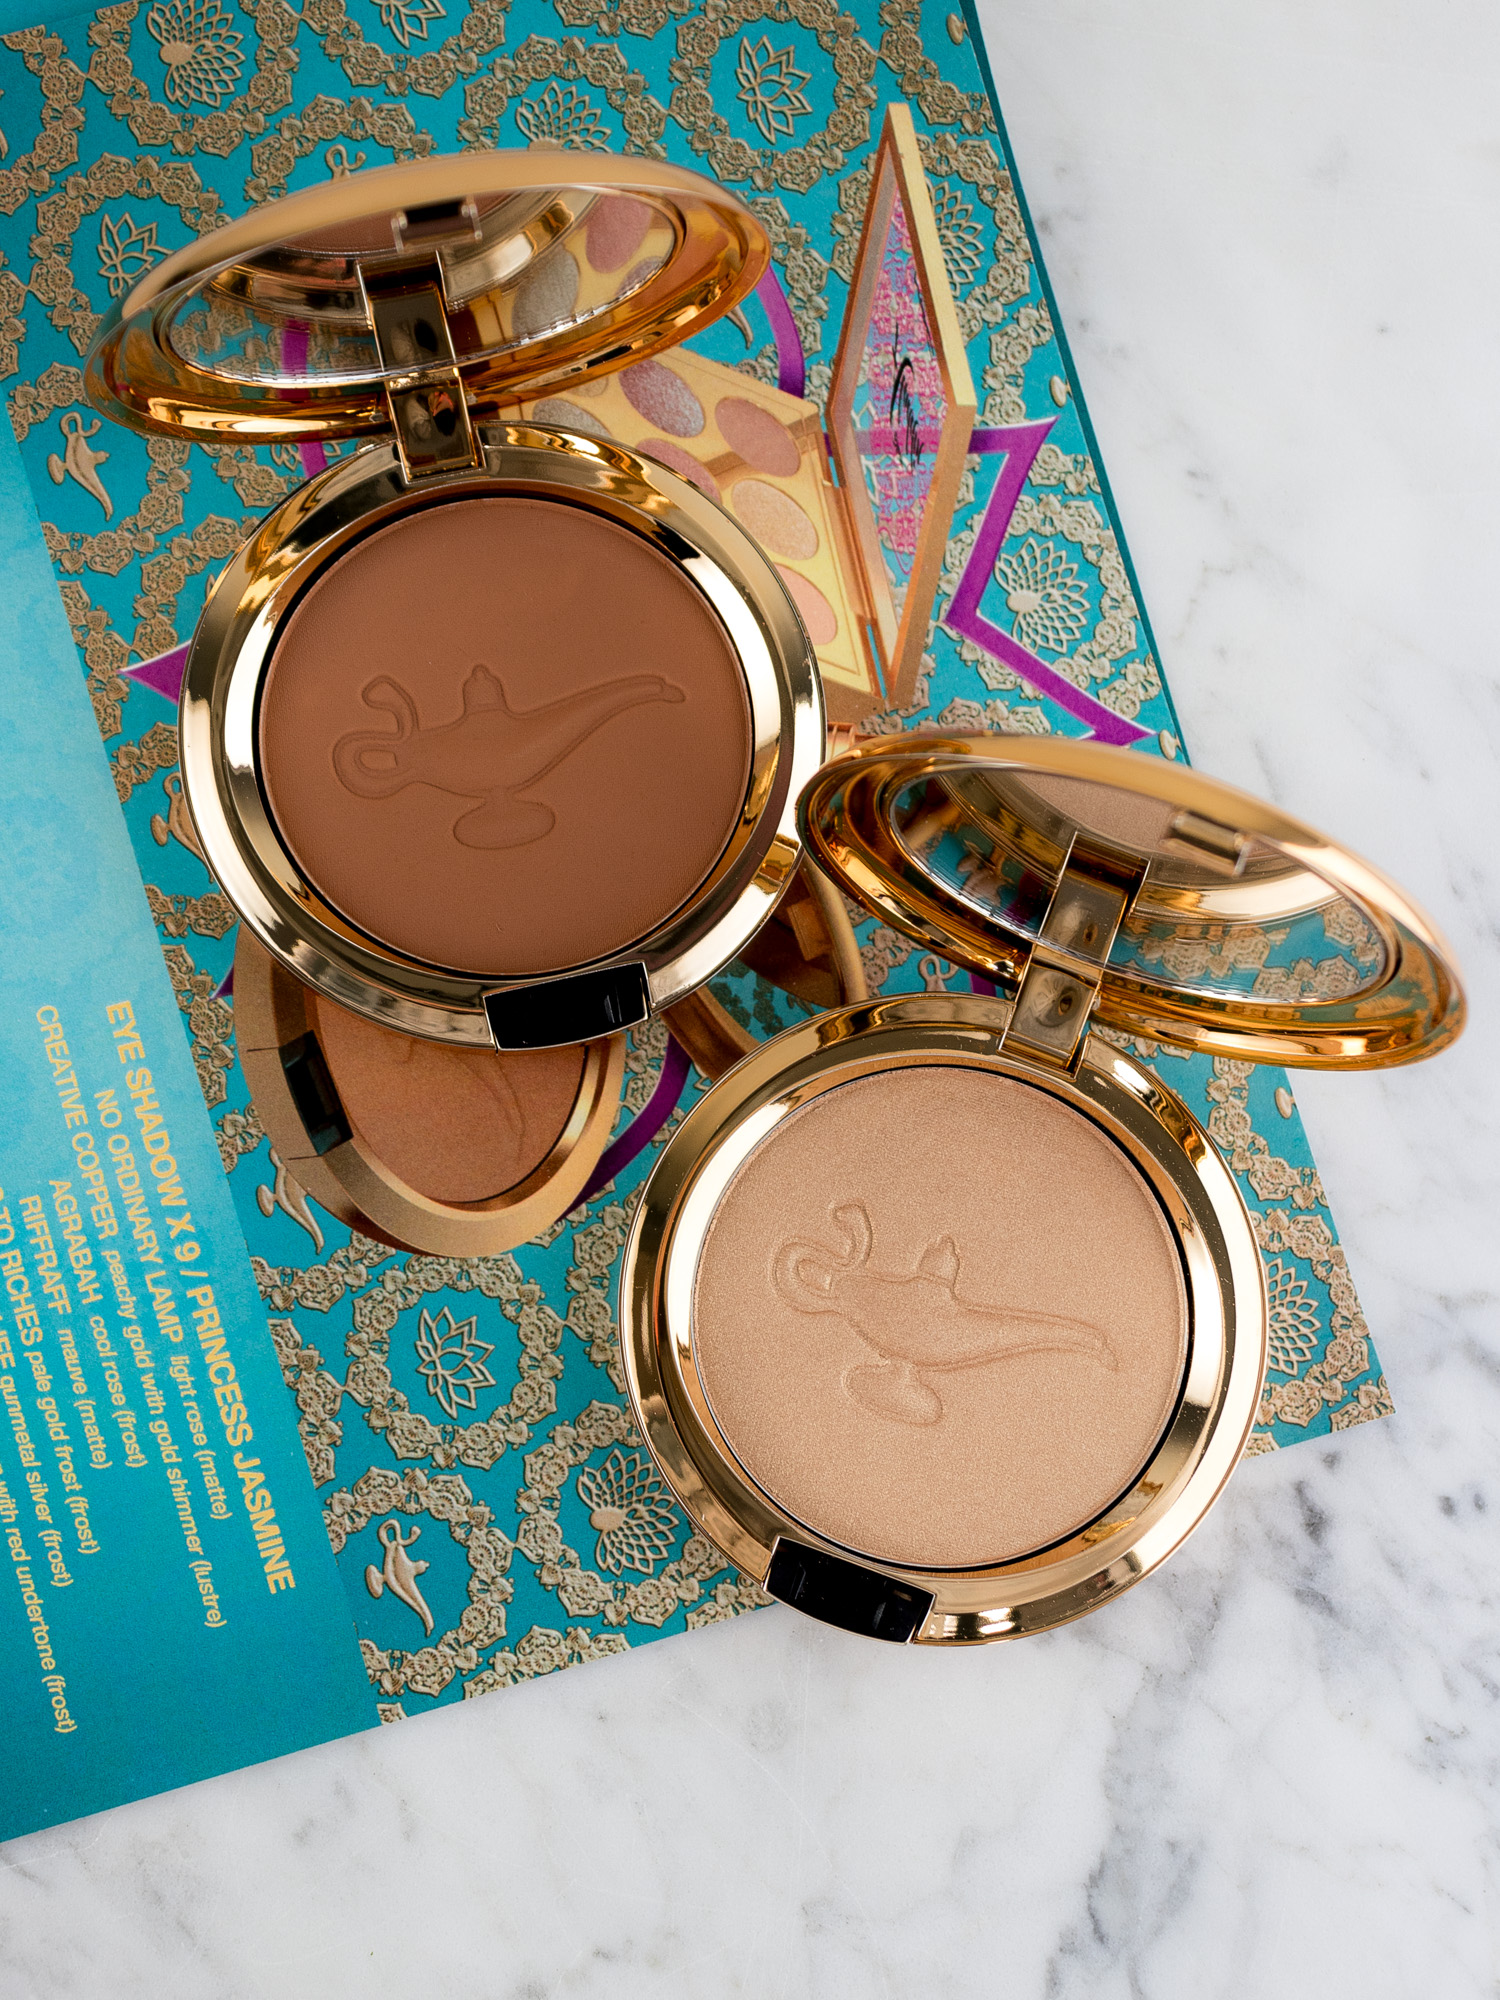 The Disney Aladdin Collection by MAC Cosmetics: Powder Blush